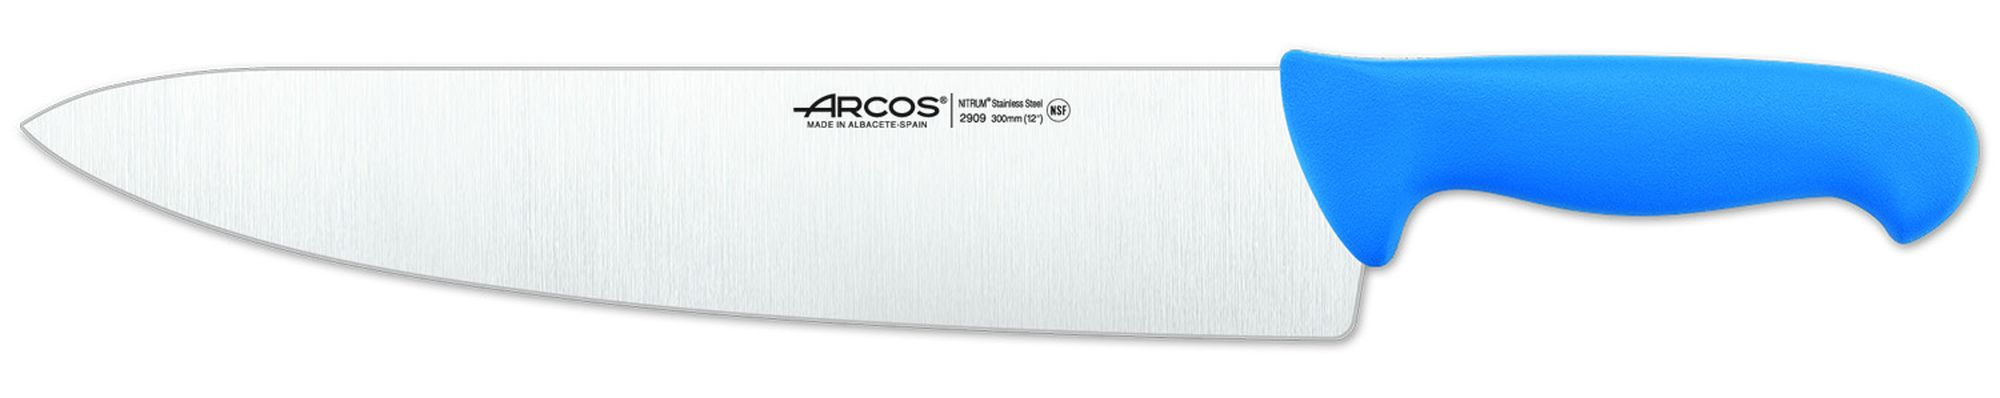 Chef's Knife Arcos ref.: 290923